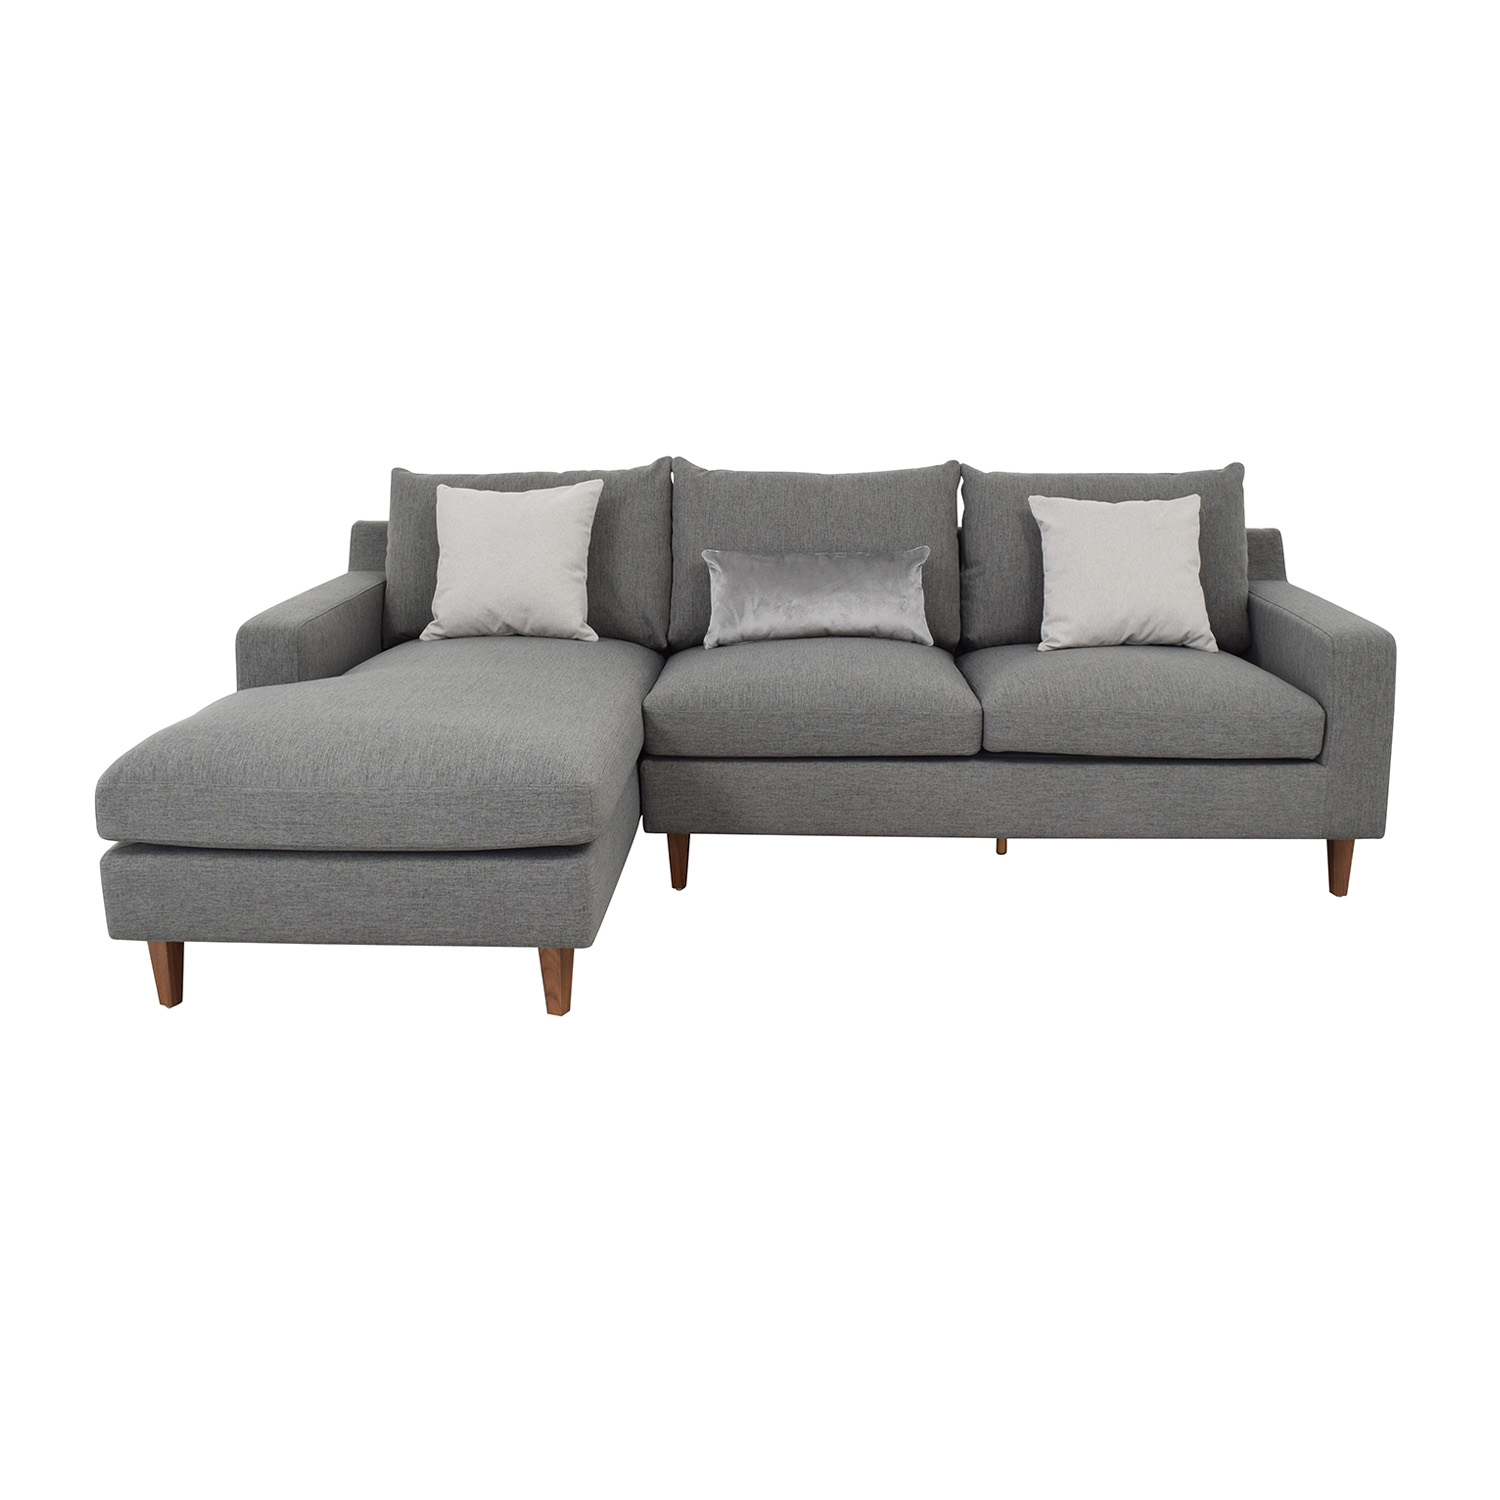 shop Interior Define Sloan Light Gray Mushroom Cross Weave Left Arm Chaise Sectional online